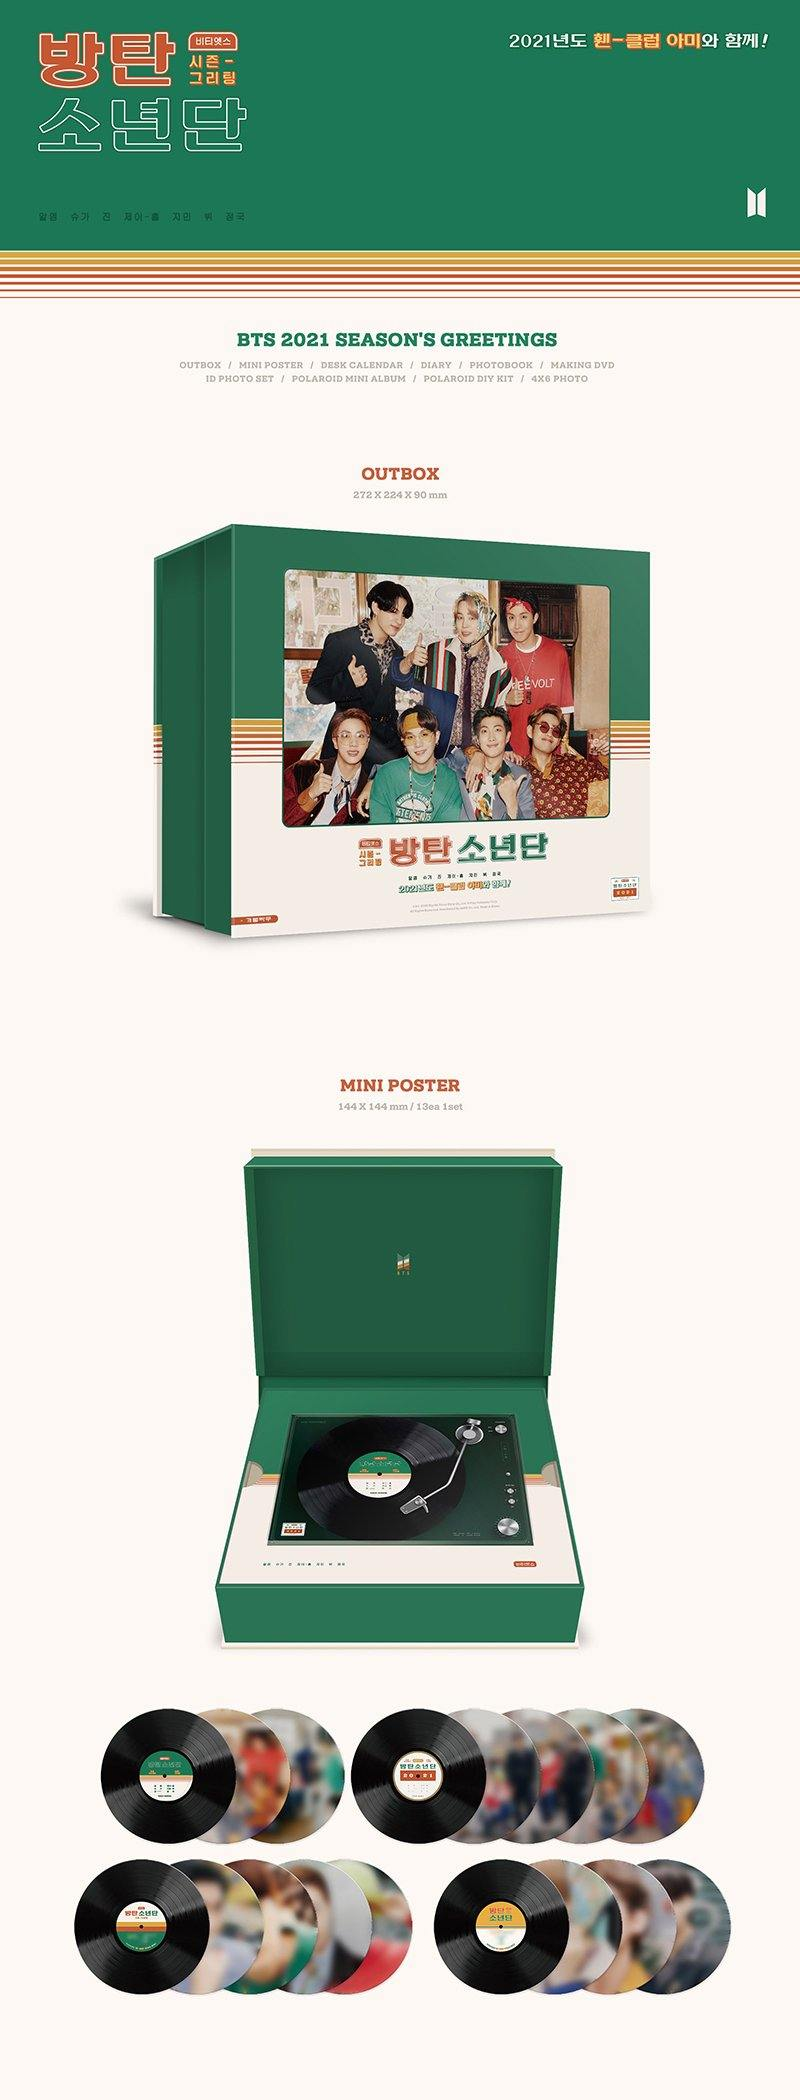 BTS - BTS 2021 Season's Greetings - 3. Pre-Order